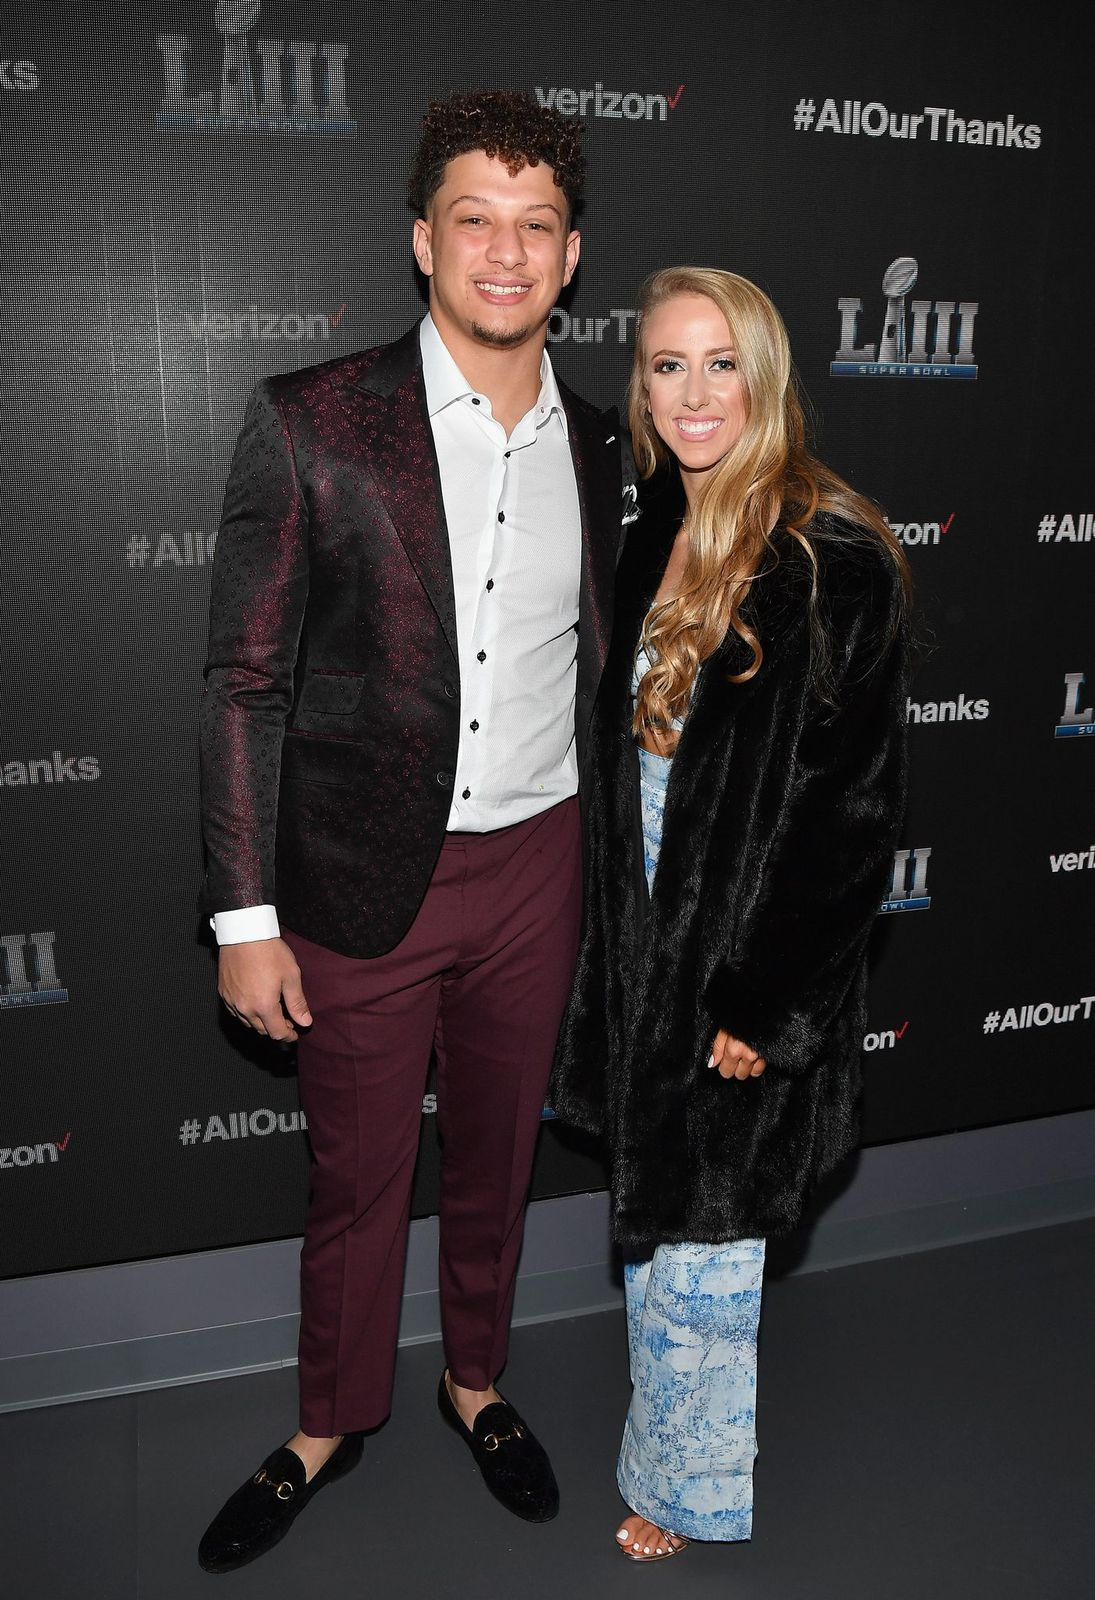 Patrick Mahomes II and Brittany Matthews on January 31, 2019, in Atlanta, Georgia | Photo: Getty Images